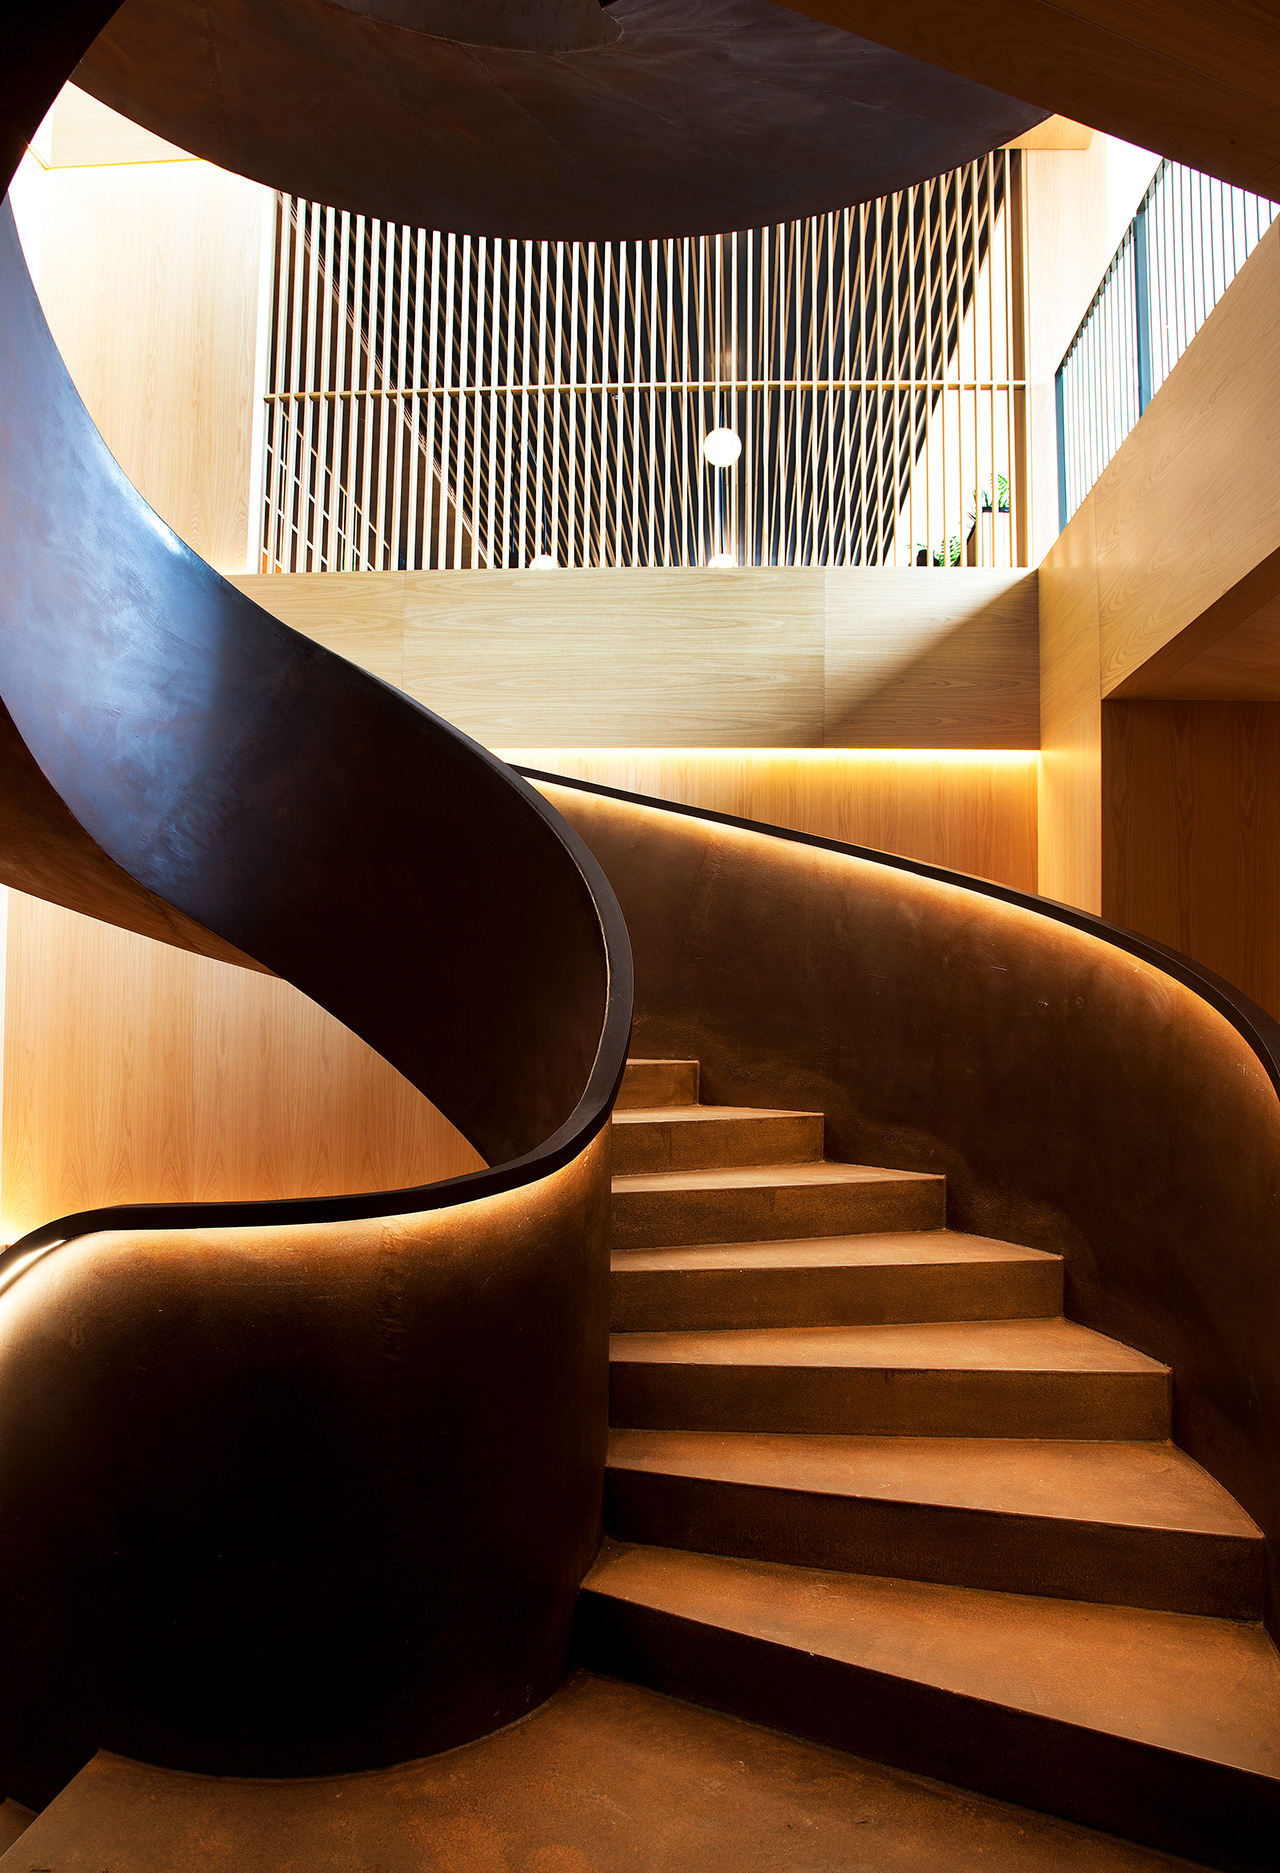 Centrepiece design of the hotel - the spiral staircase.